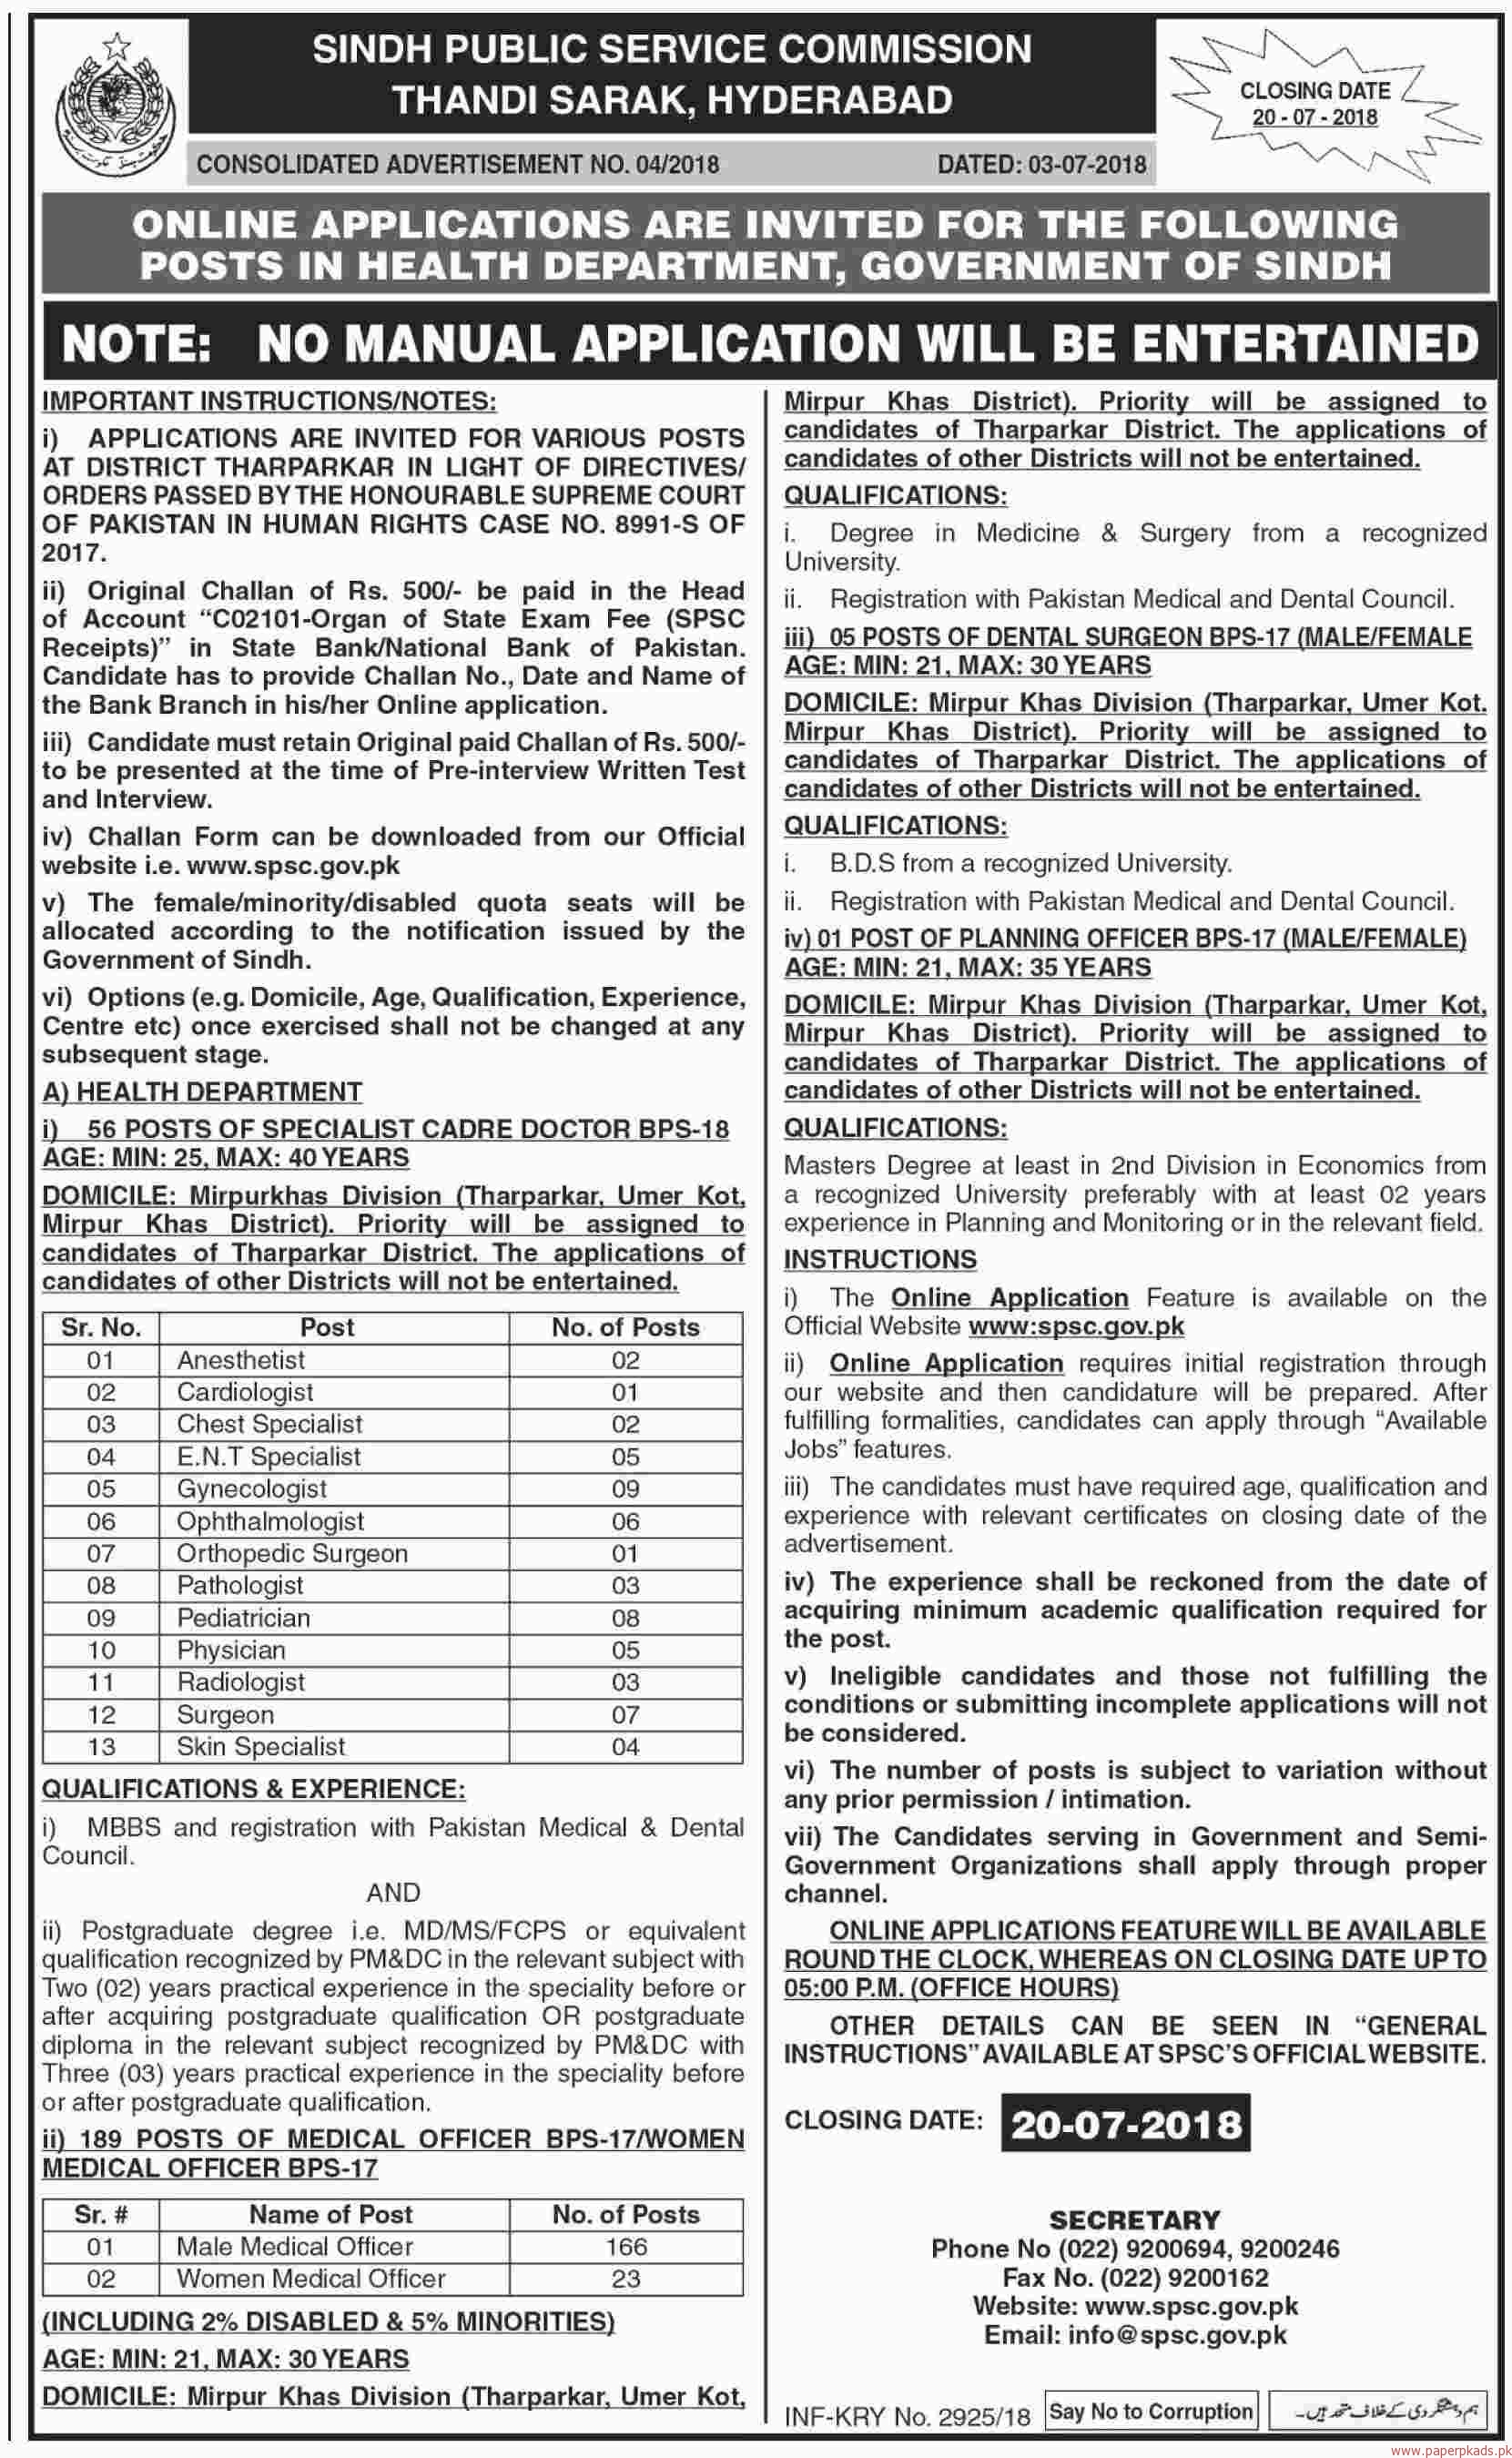 Sindh Public Service Commission jobs 2018 Latest